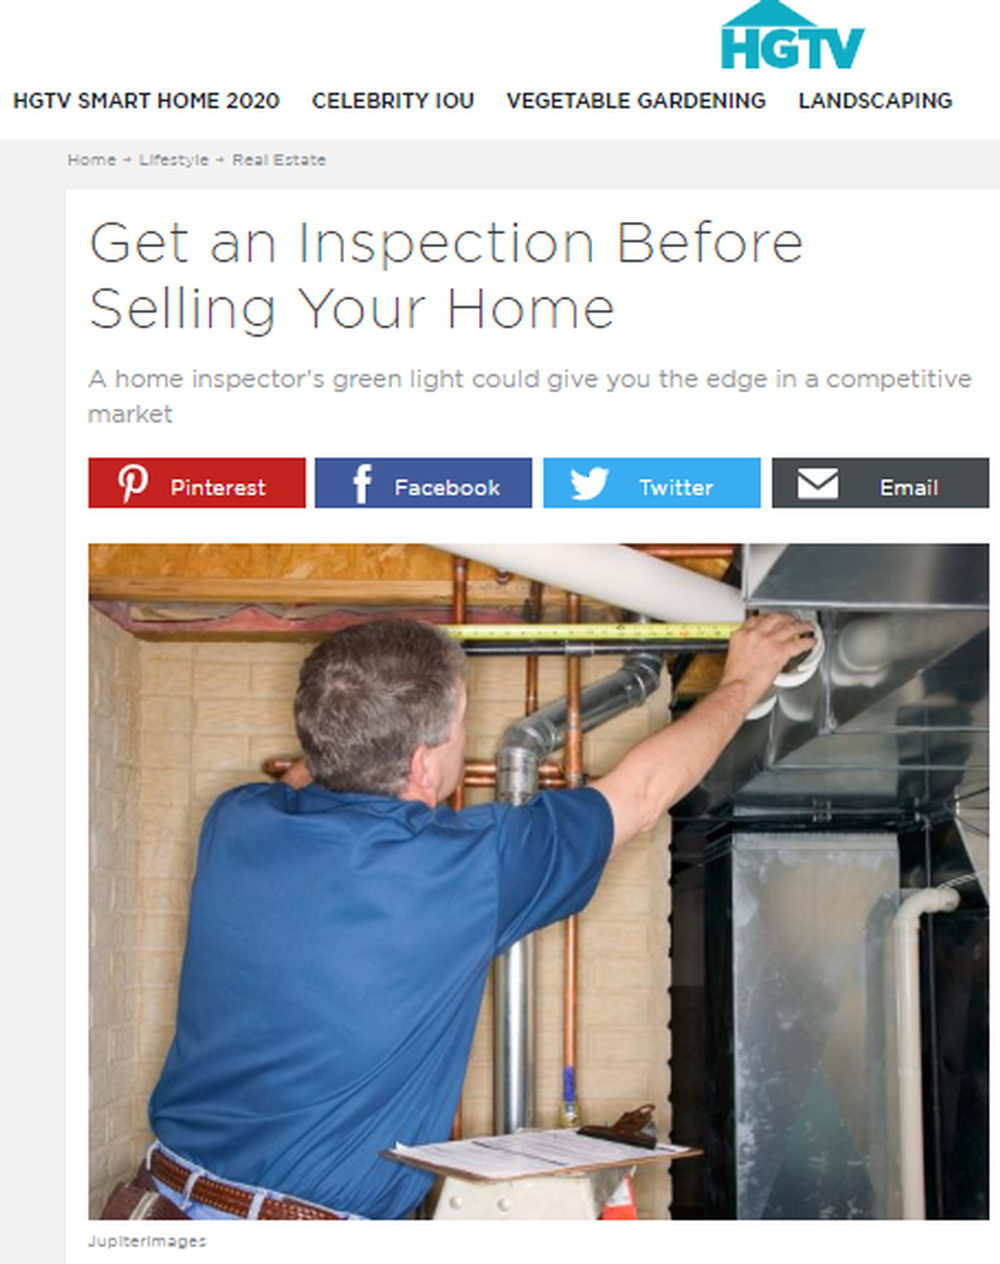 Get an Inspection Before Selling Your Home   HGTV (3).png